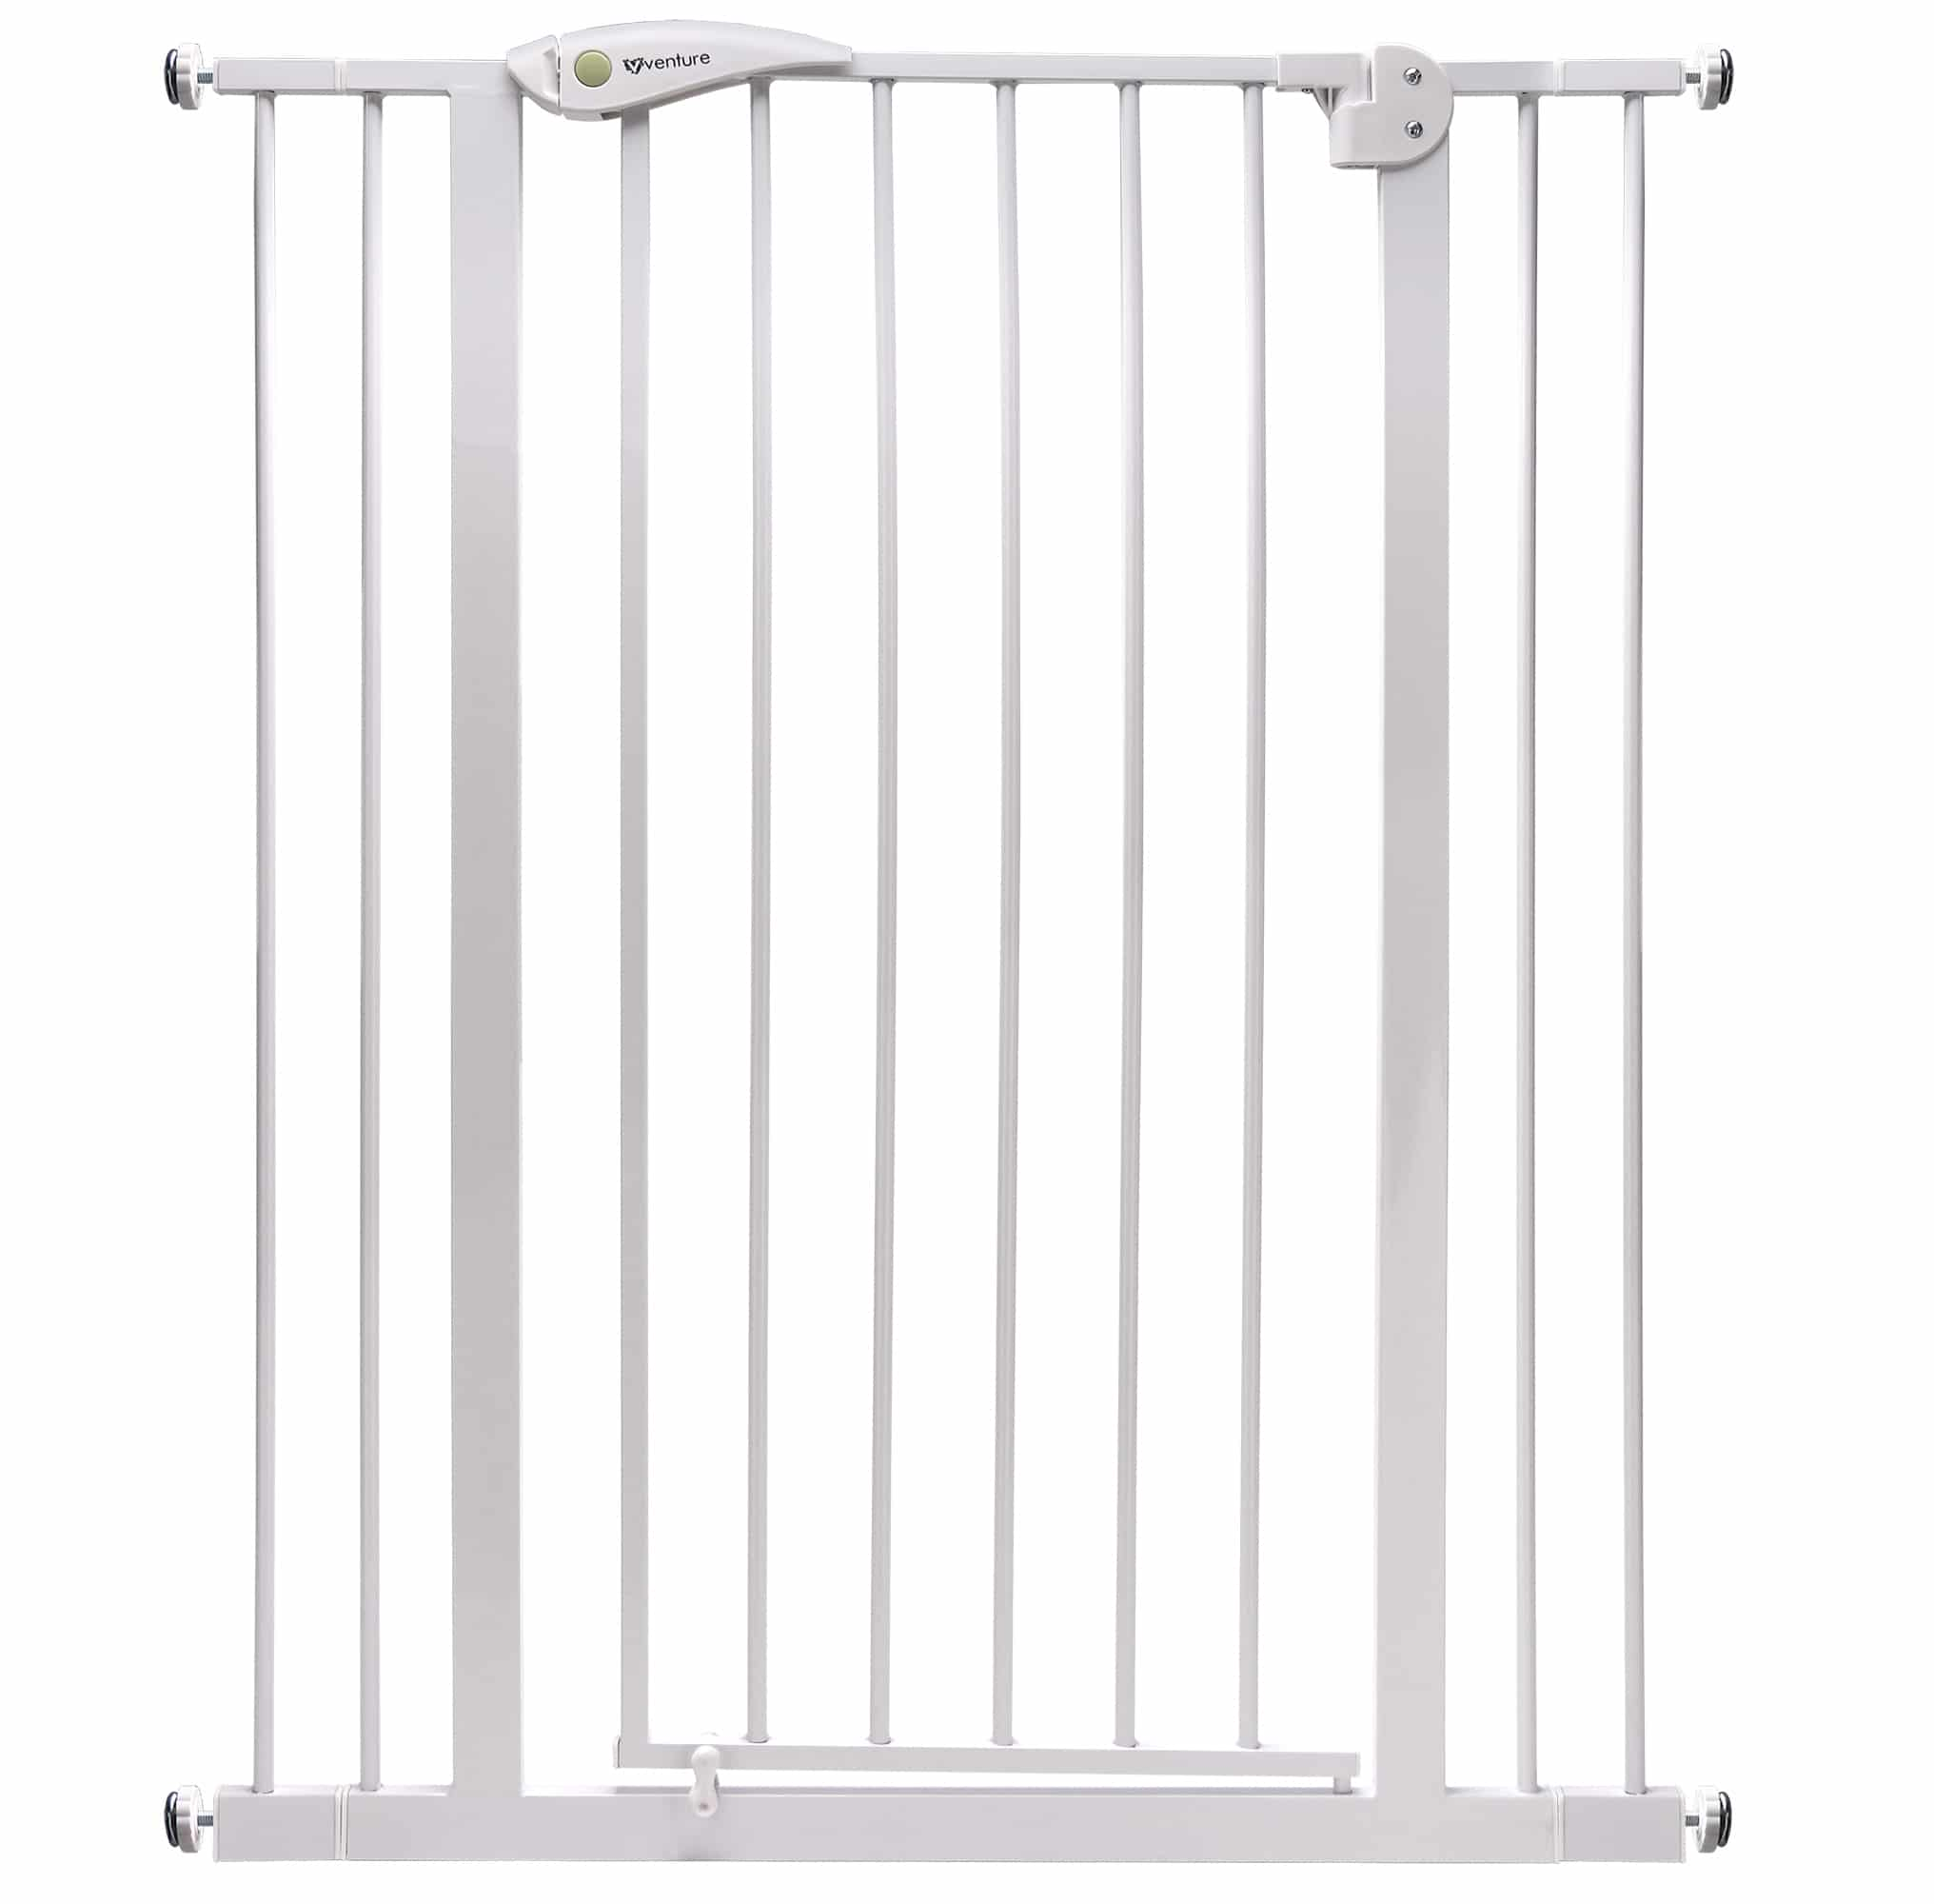 Attached extension for Venture Q-Fix safety gate